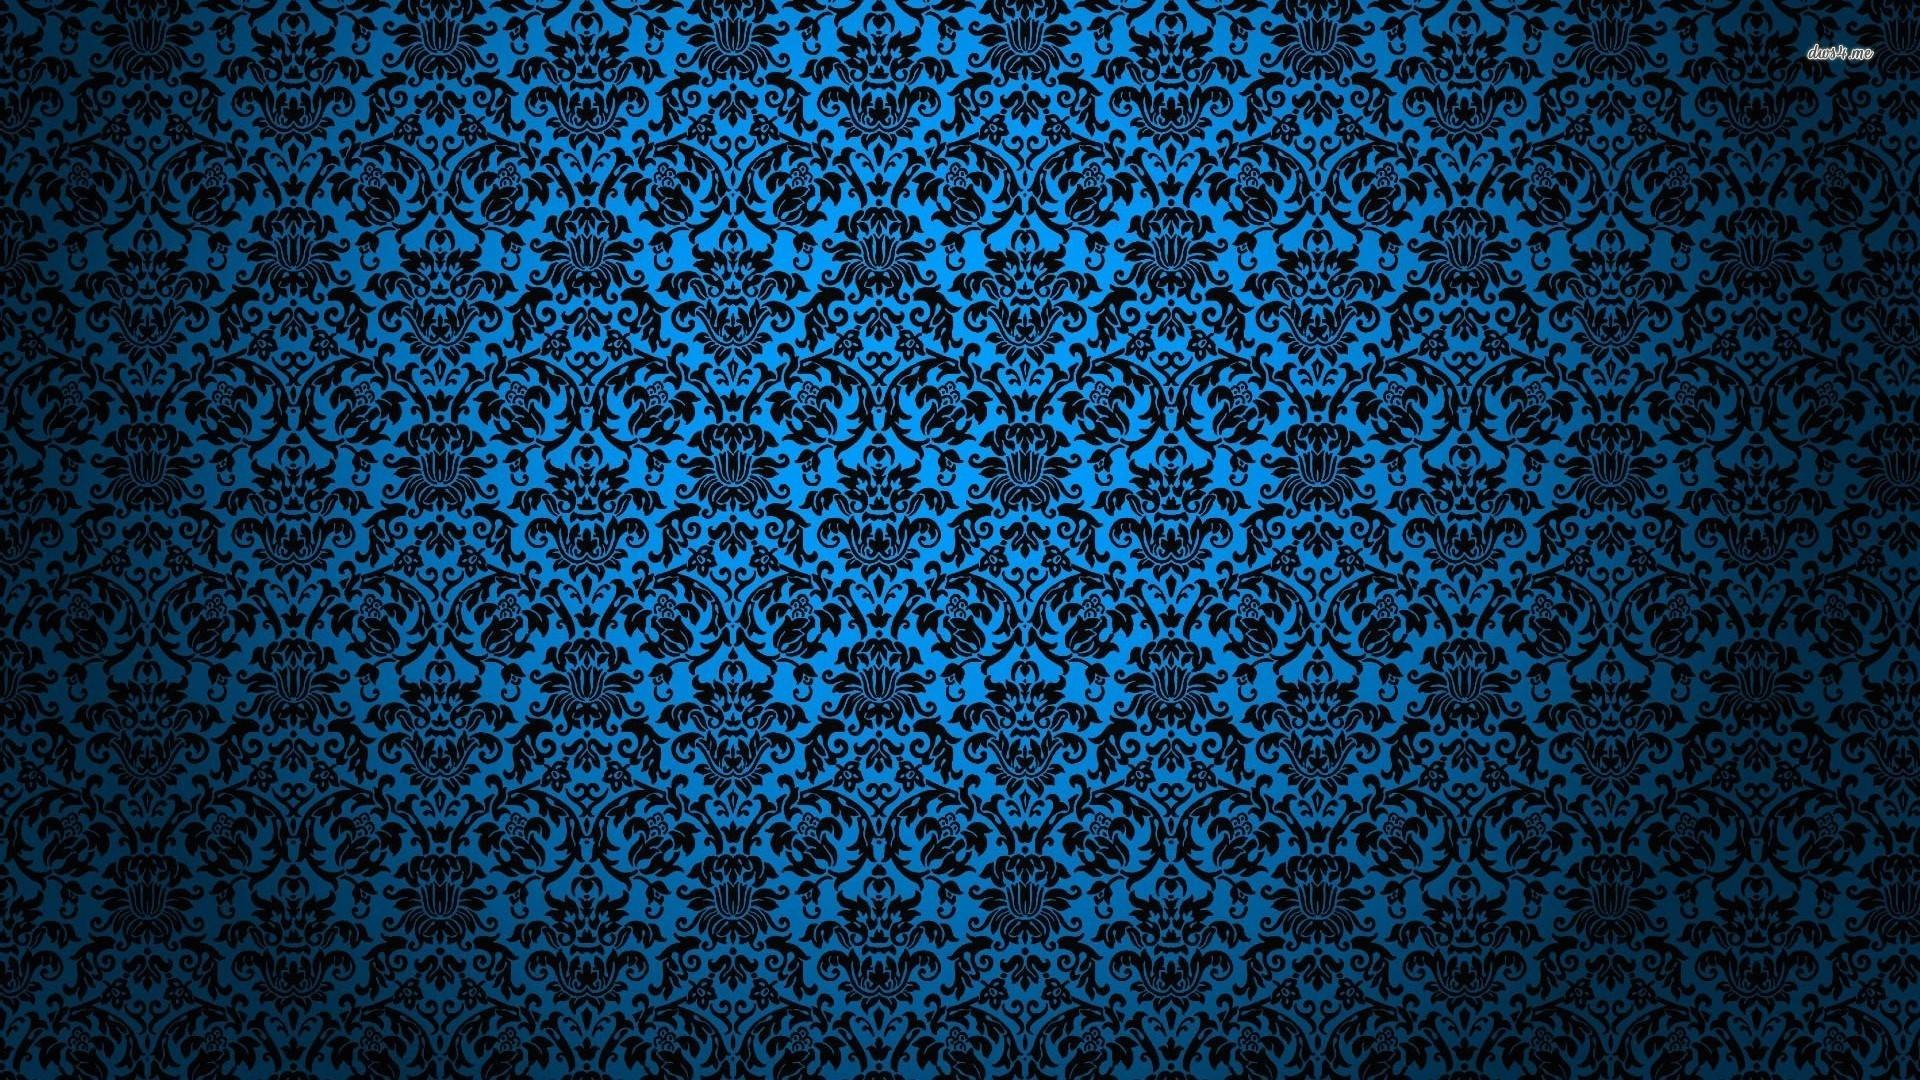 Desktop Background Patterns 65 Images